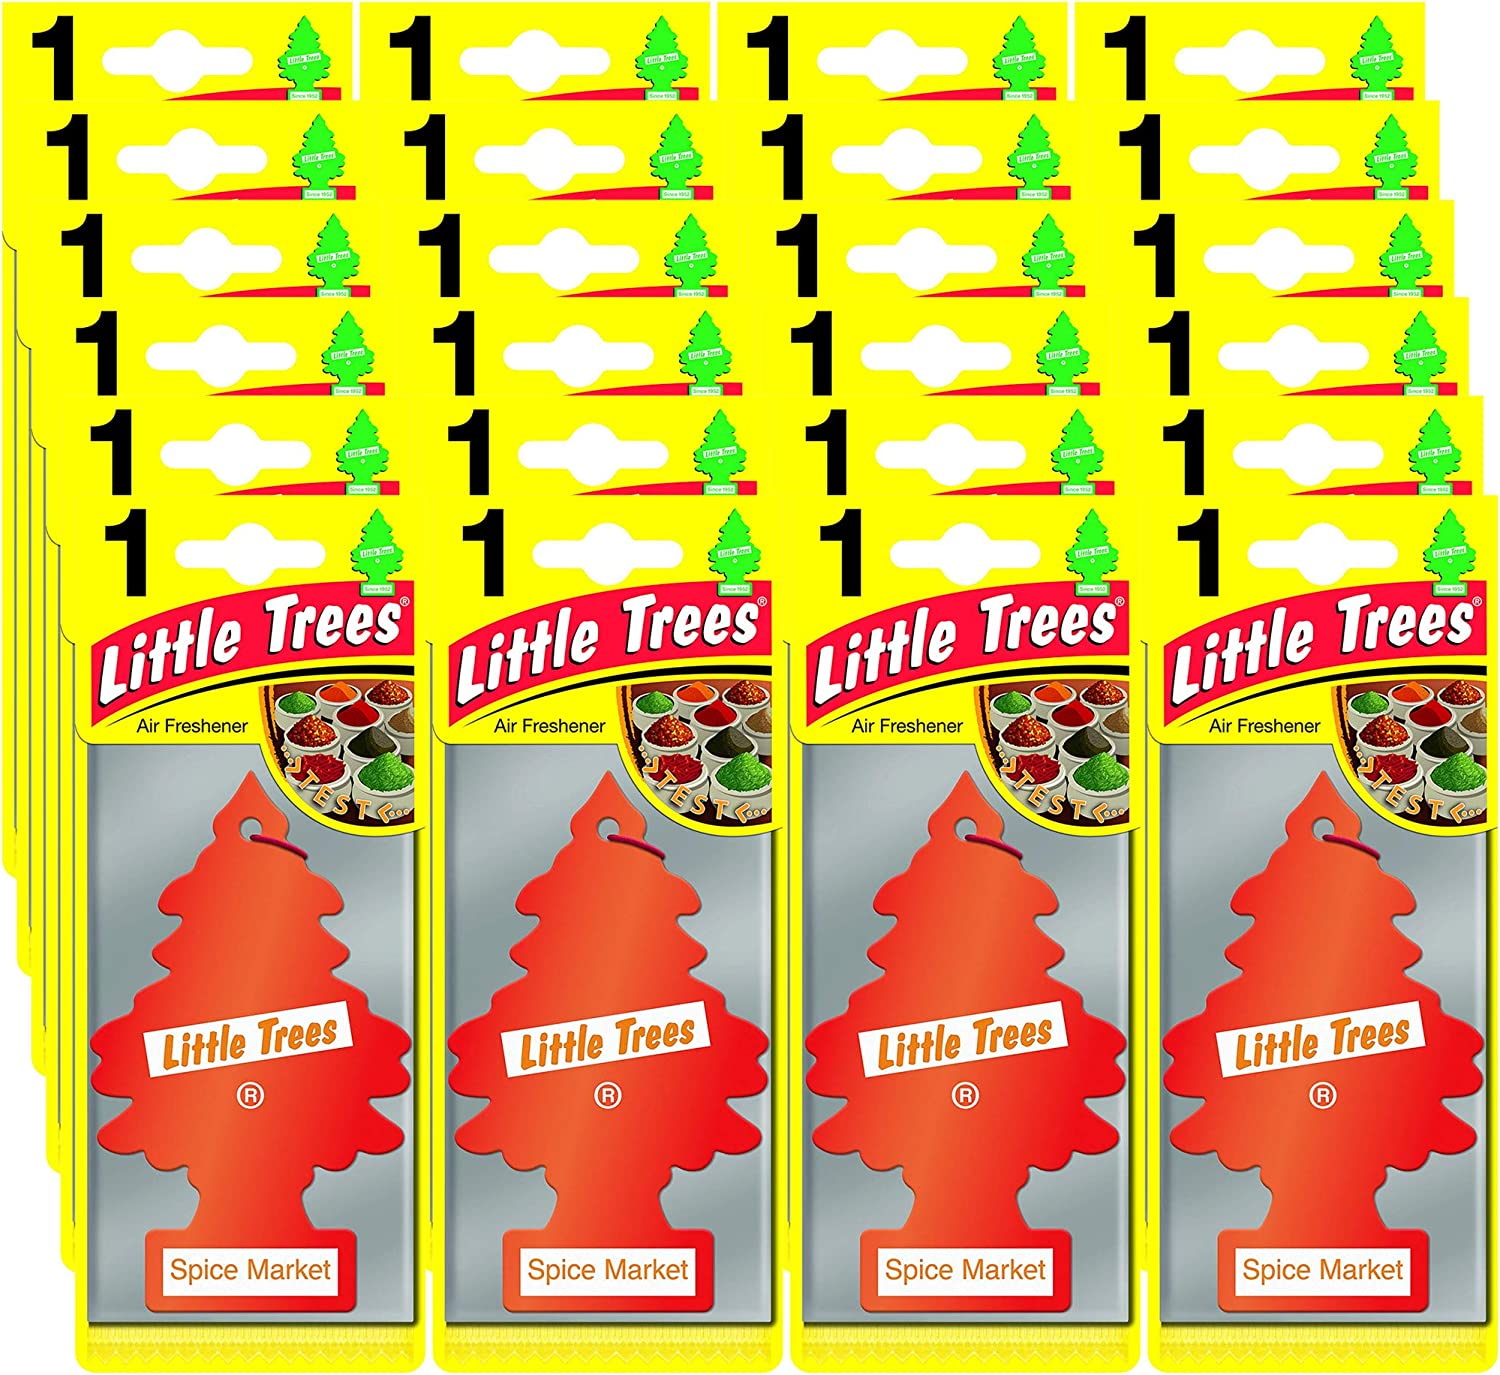 LITTLE TREES Car Air Freshener | Hanging Paper Tree for Home or Car | Spice Market | Pack of 24